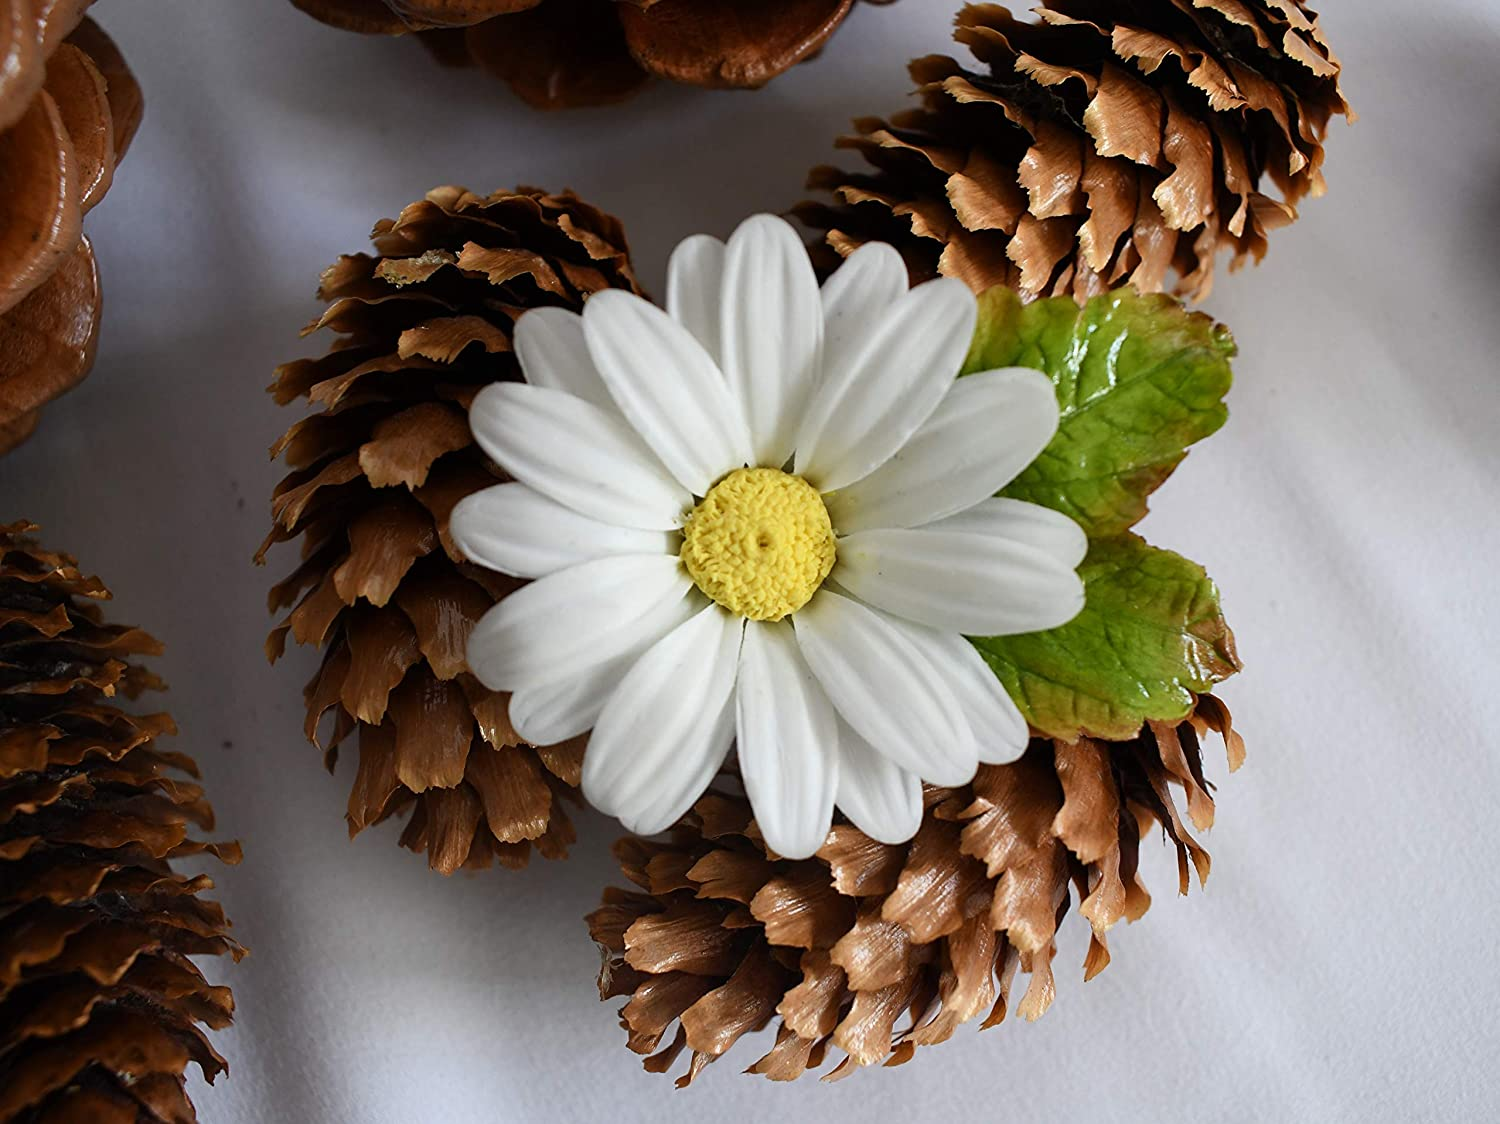 Real Daisy Brooch Botanical Brooch Flower Jewelry Pressed Flower Resin Pin Framed Dried Flowers Framed Dried Flowers